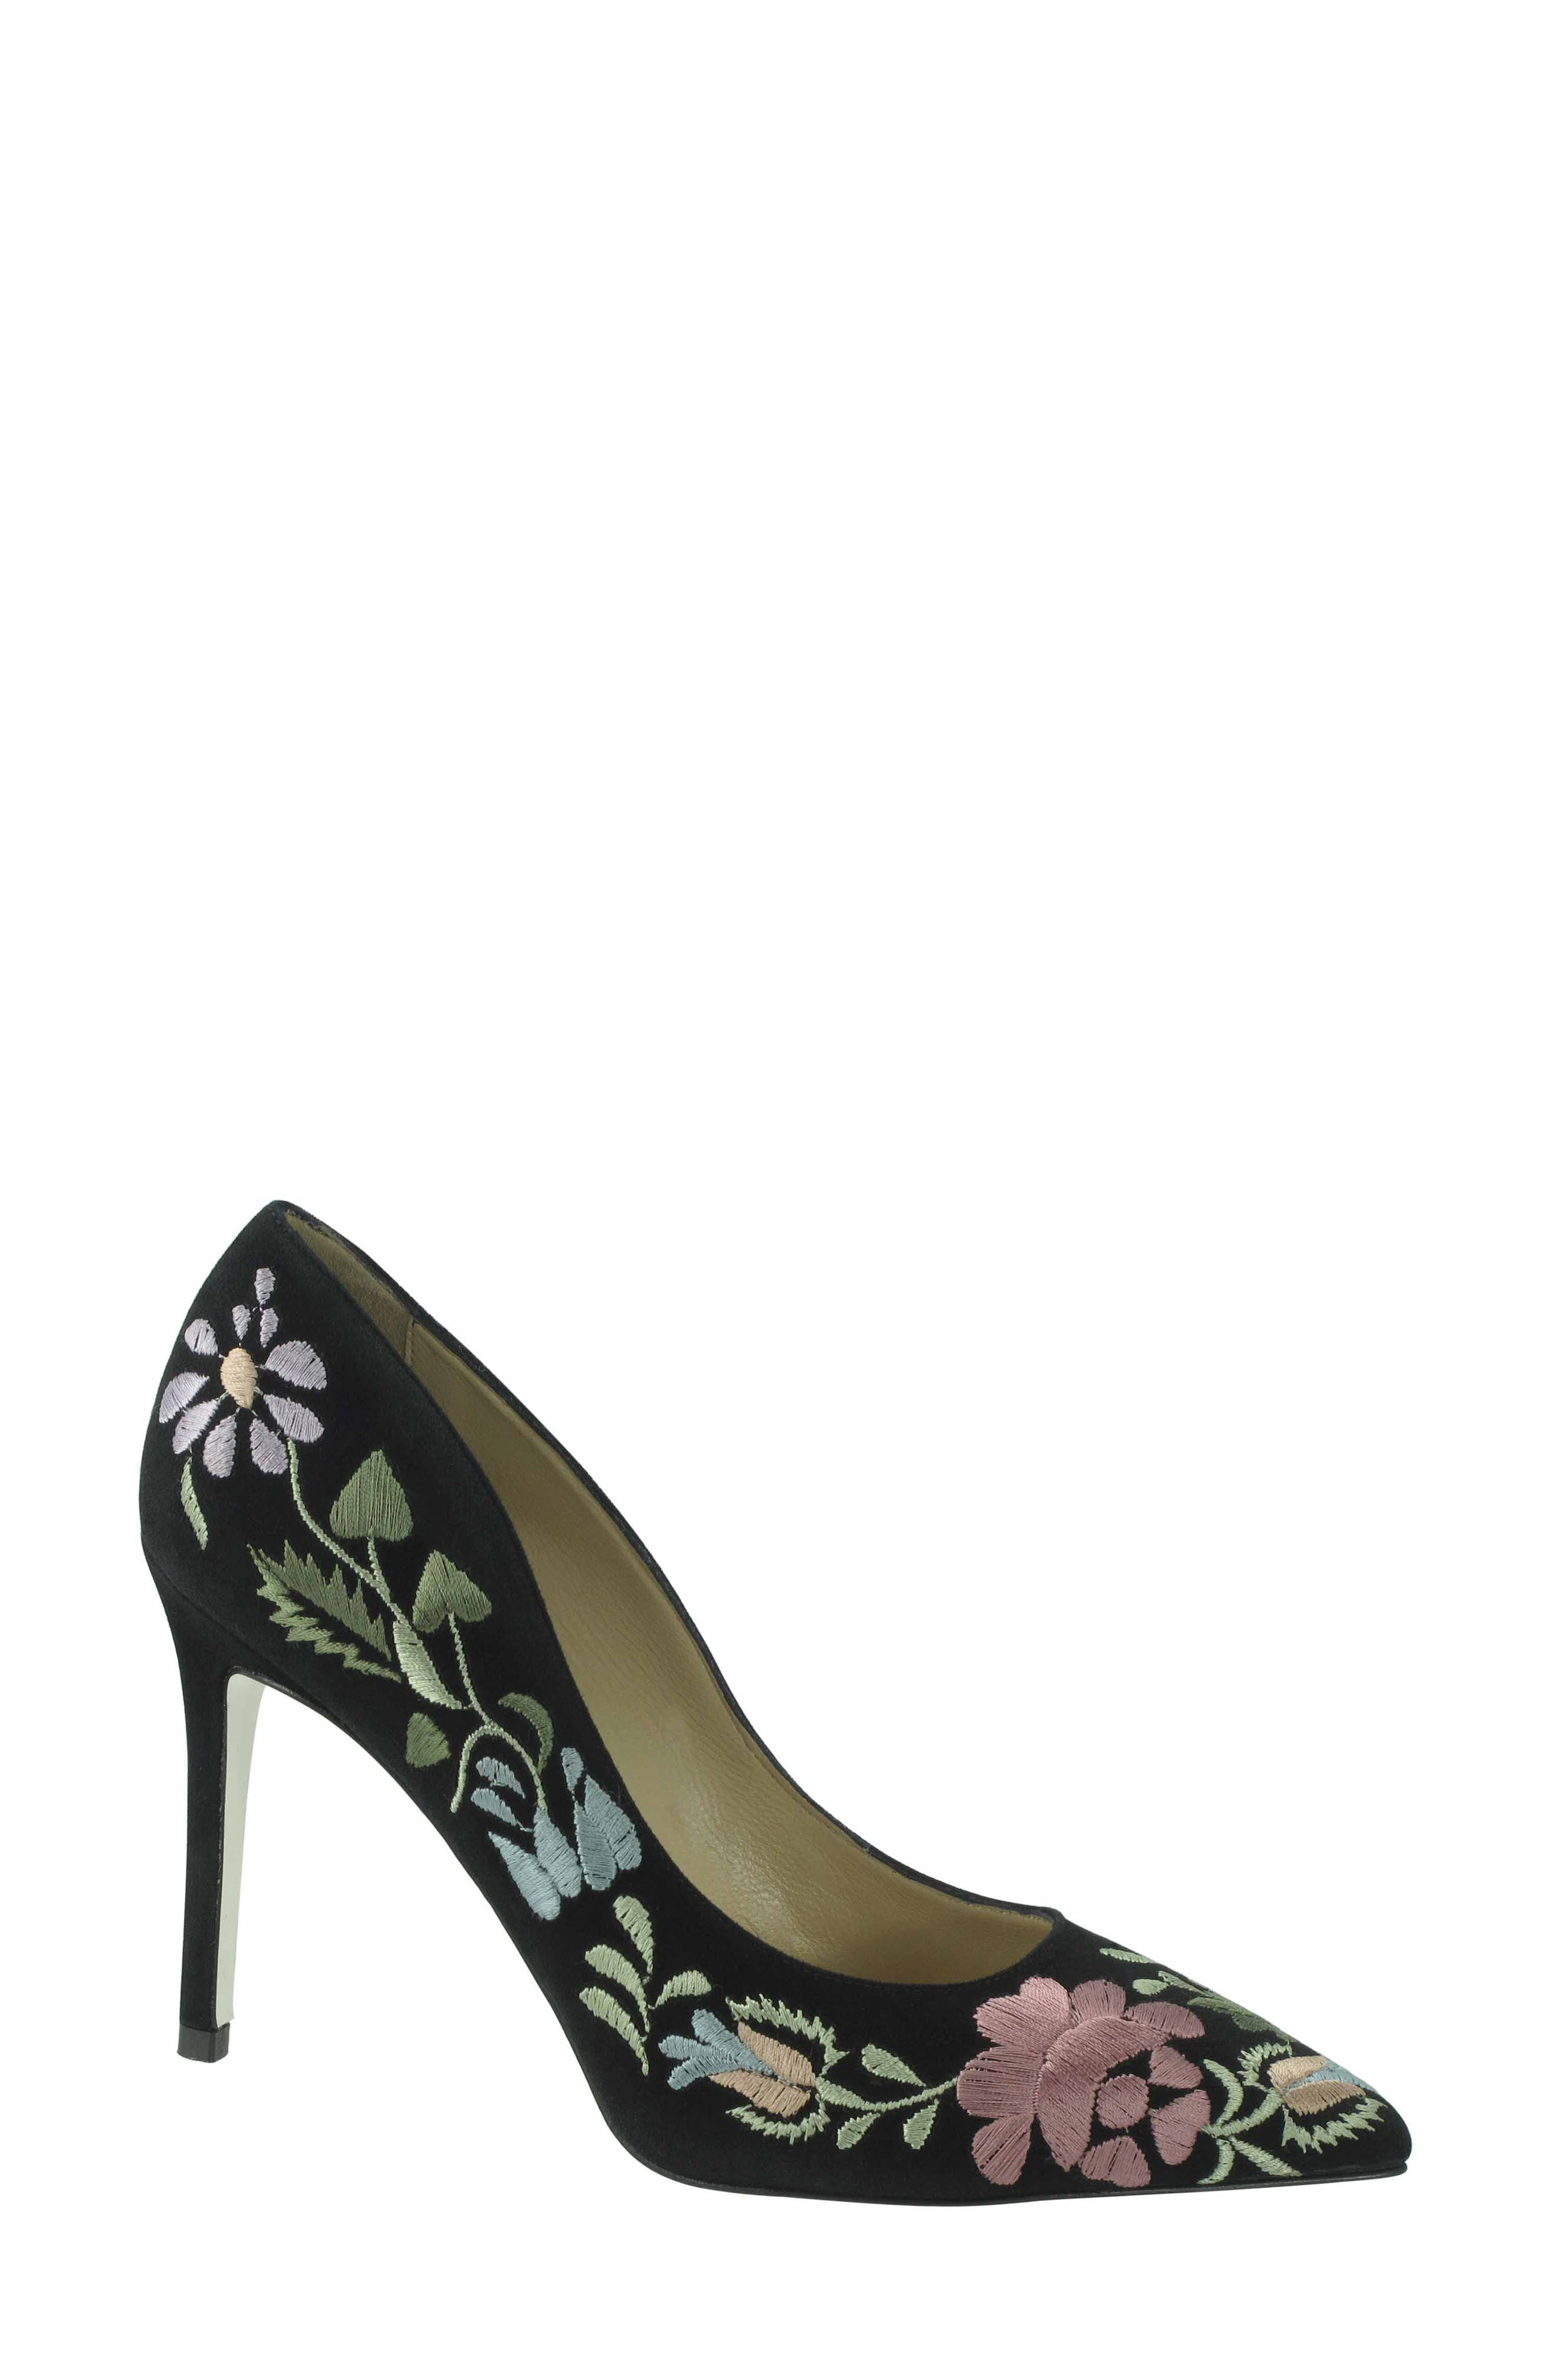 Shana Flower Embroidered Pump,                             Main thumbnail 1, color,                             Onyx Multi Suede